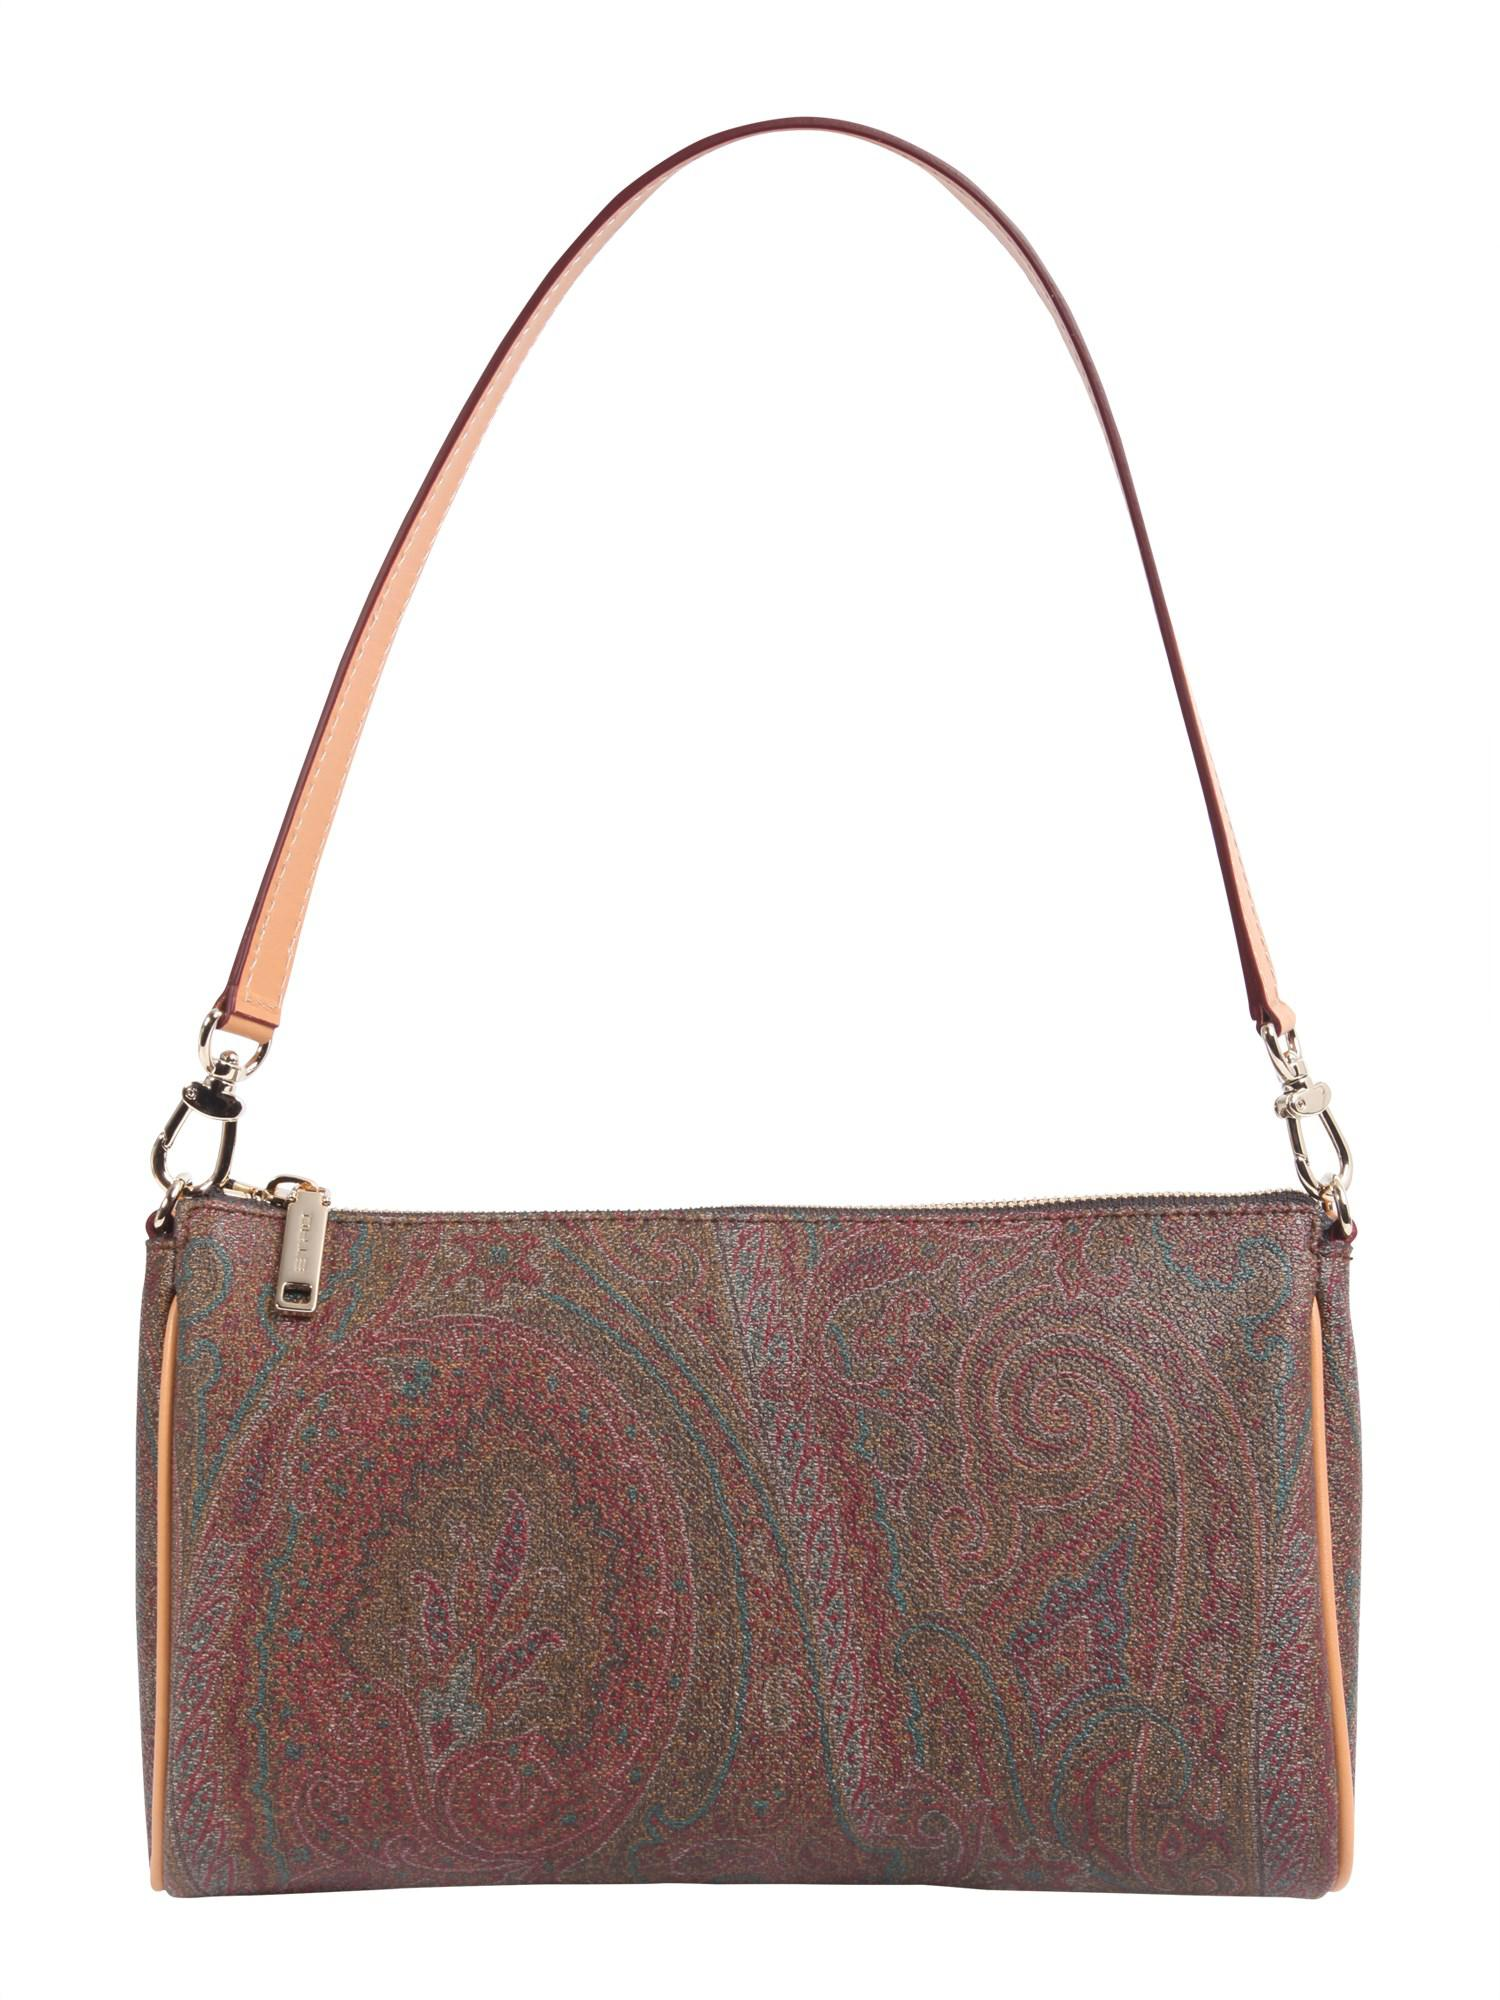 b90b16627450 Etro Paisley Printed Shoulder Bag With Leather Details - Lyst